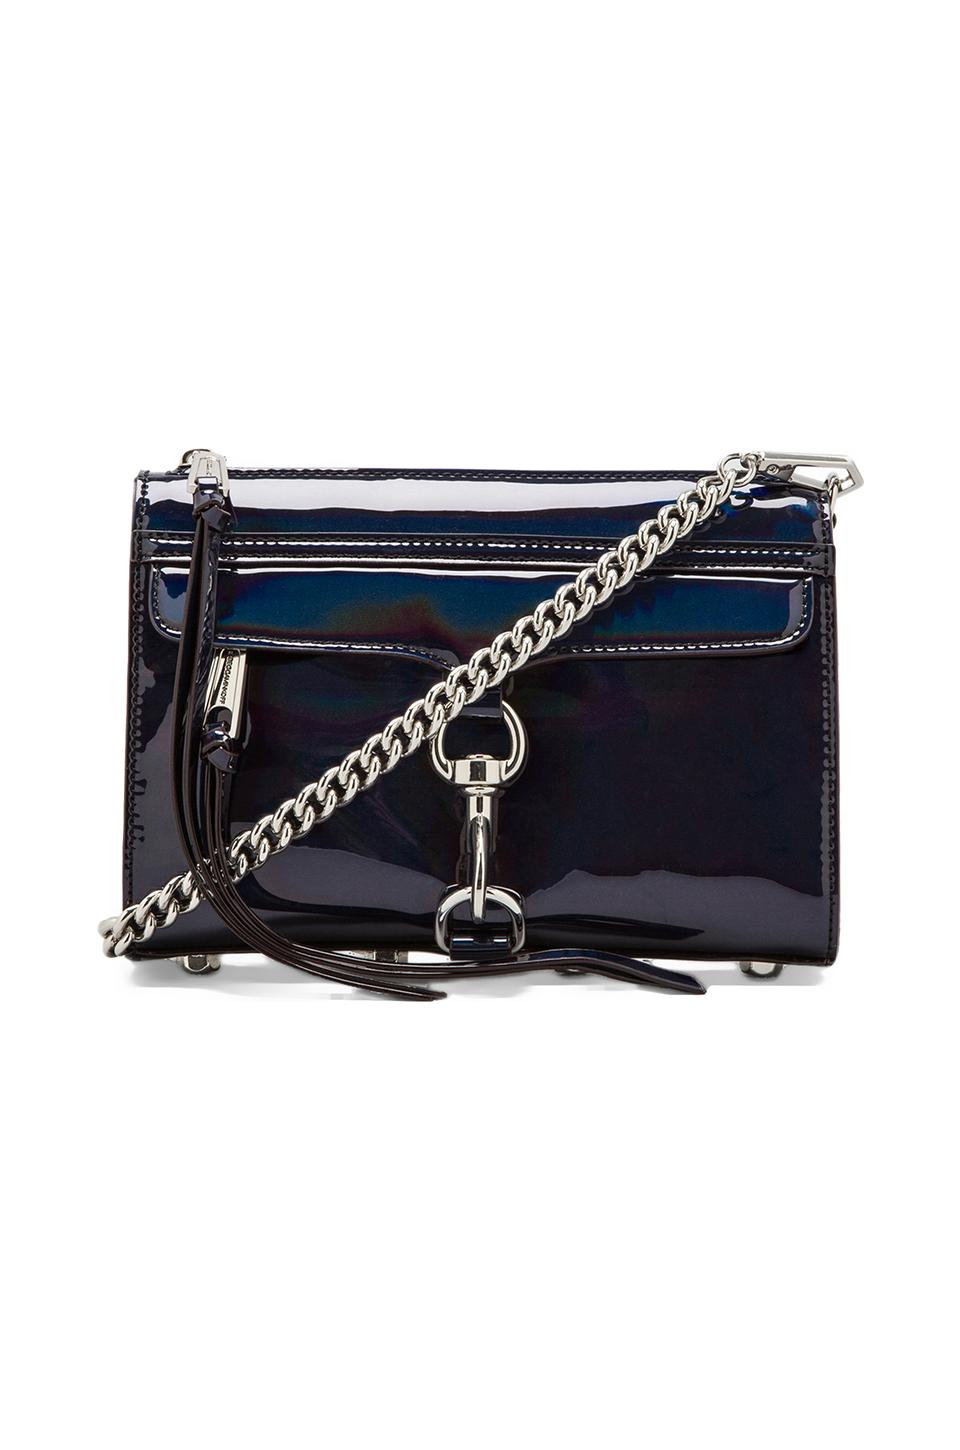 Rebecca Minkoff Hologram Mini Mac in Black